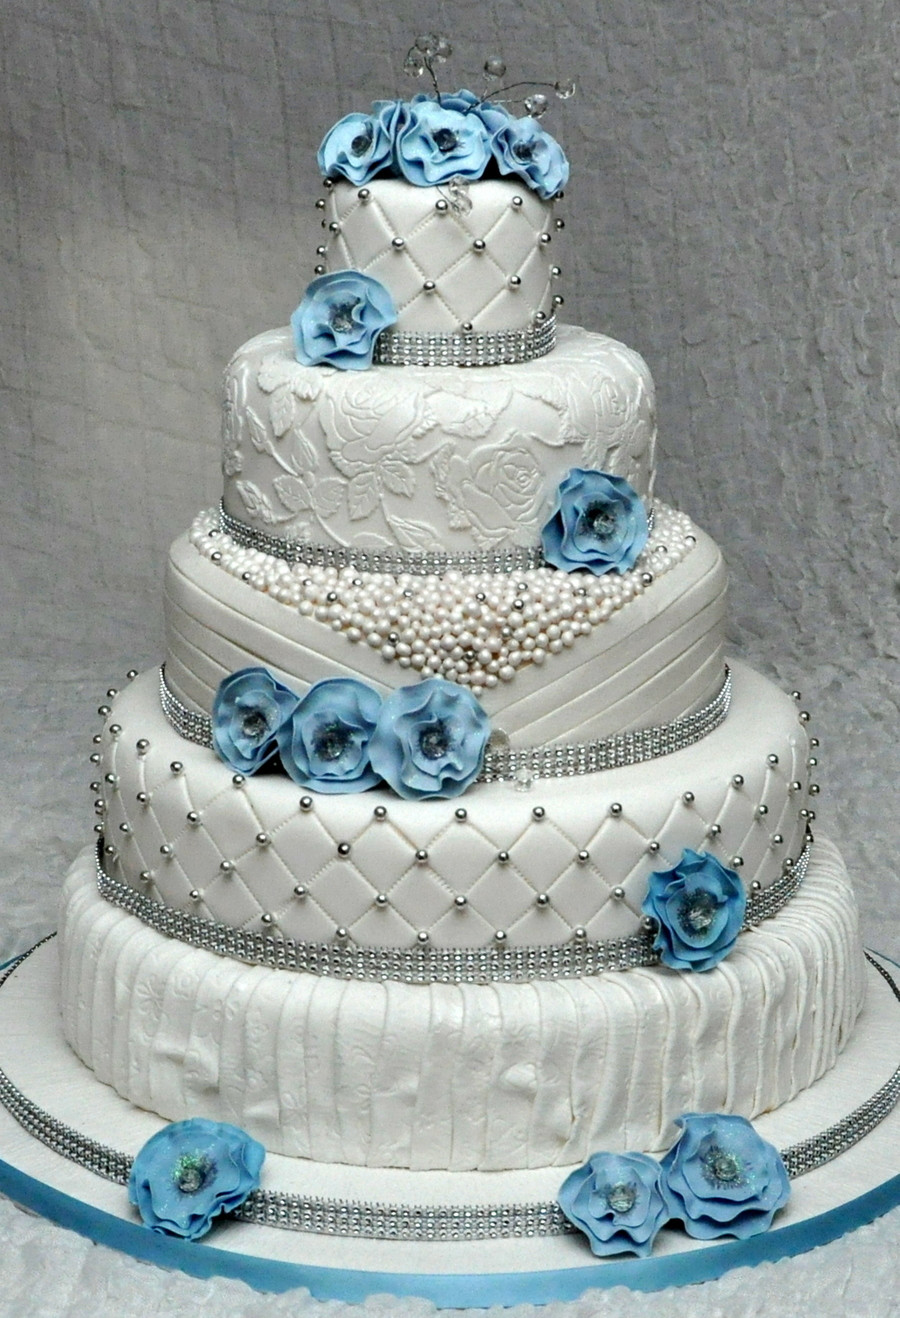 Wedding Cakes Decorated  5 Tier Wedding Cake With Edible Pearls And Lace Decorated